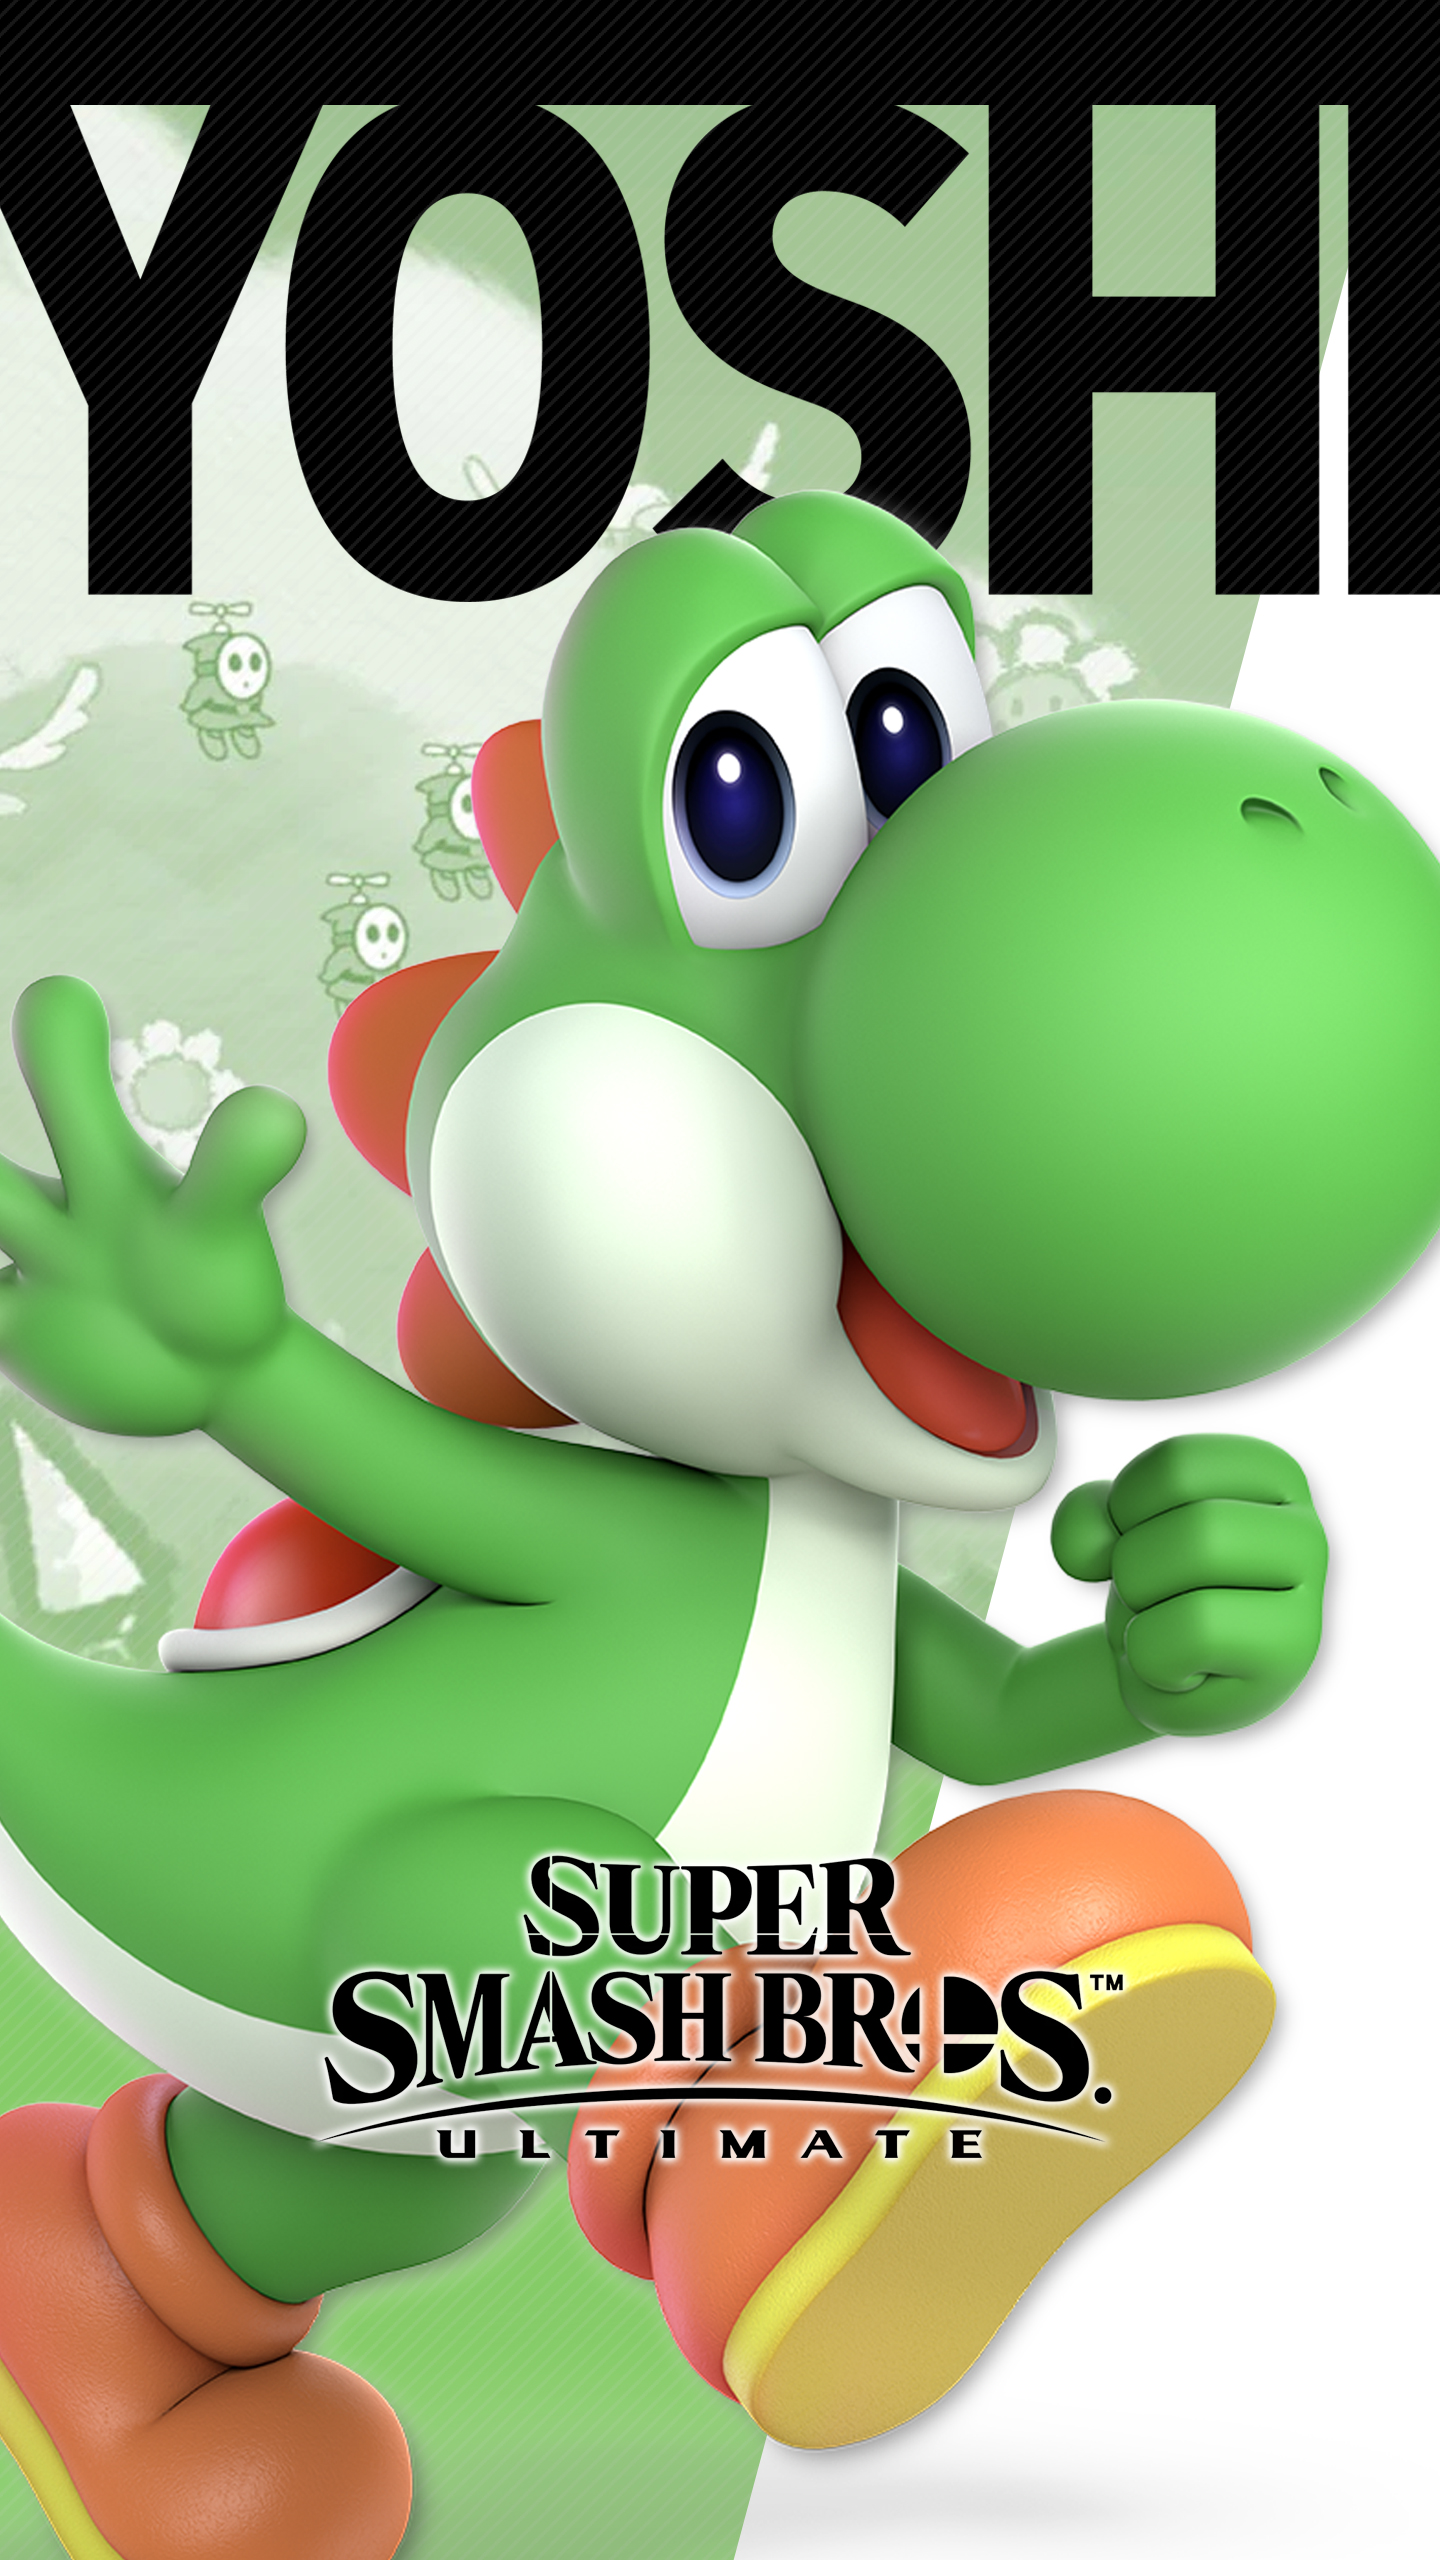 Cat Wallpaper Iphone X Super Smash Bros Ultimate Yoshi Wallpapers Cat With Monocle